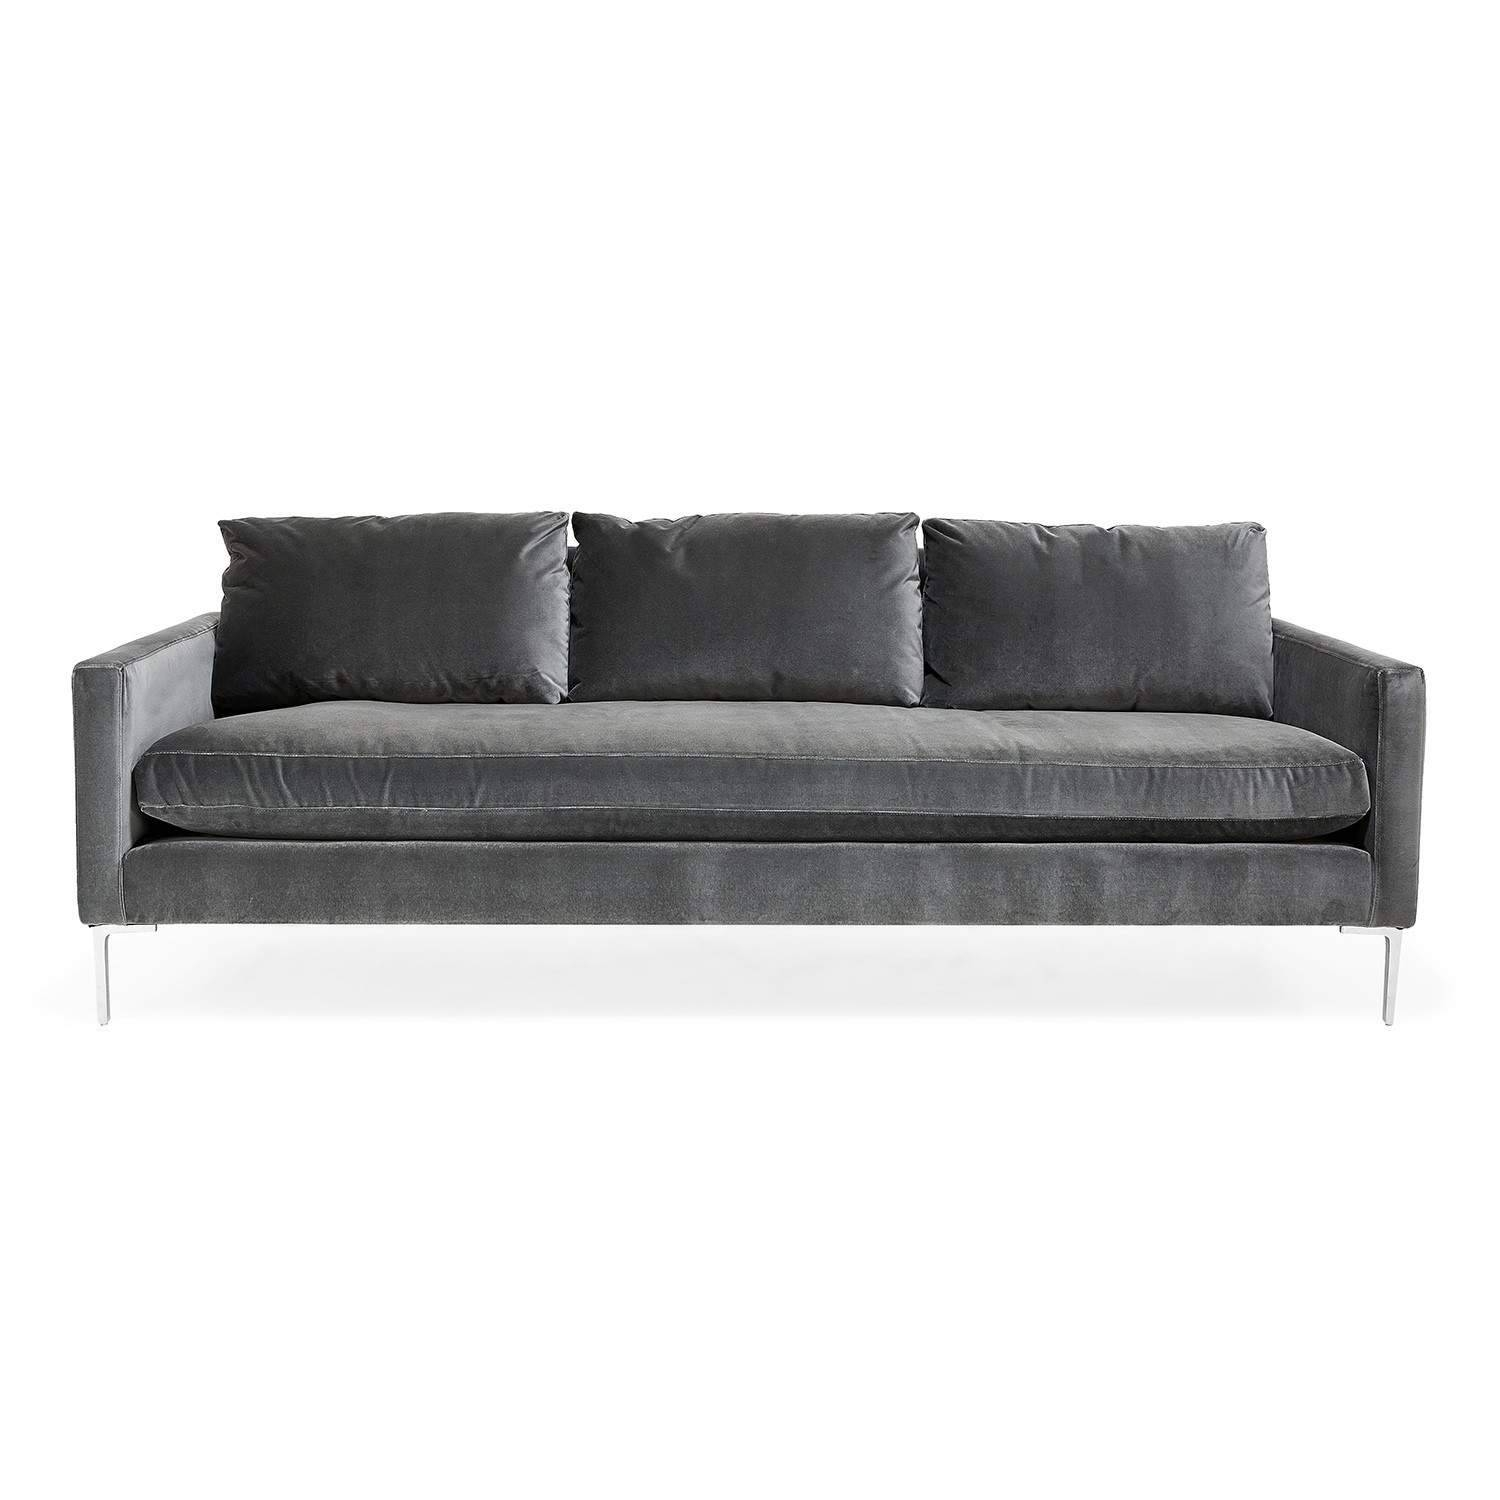 Cobble Hill Furniture At Abc Home With Cobble Hill Sofas (View 9 of 15)